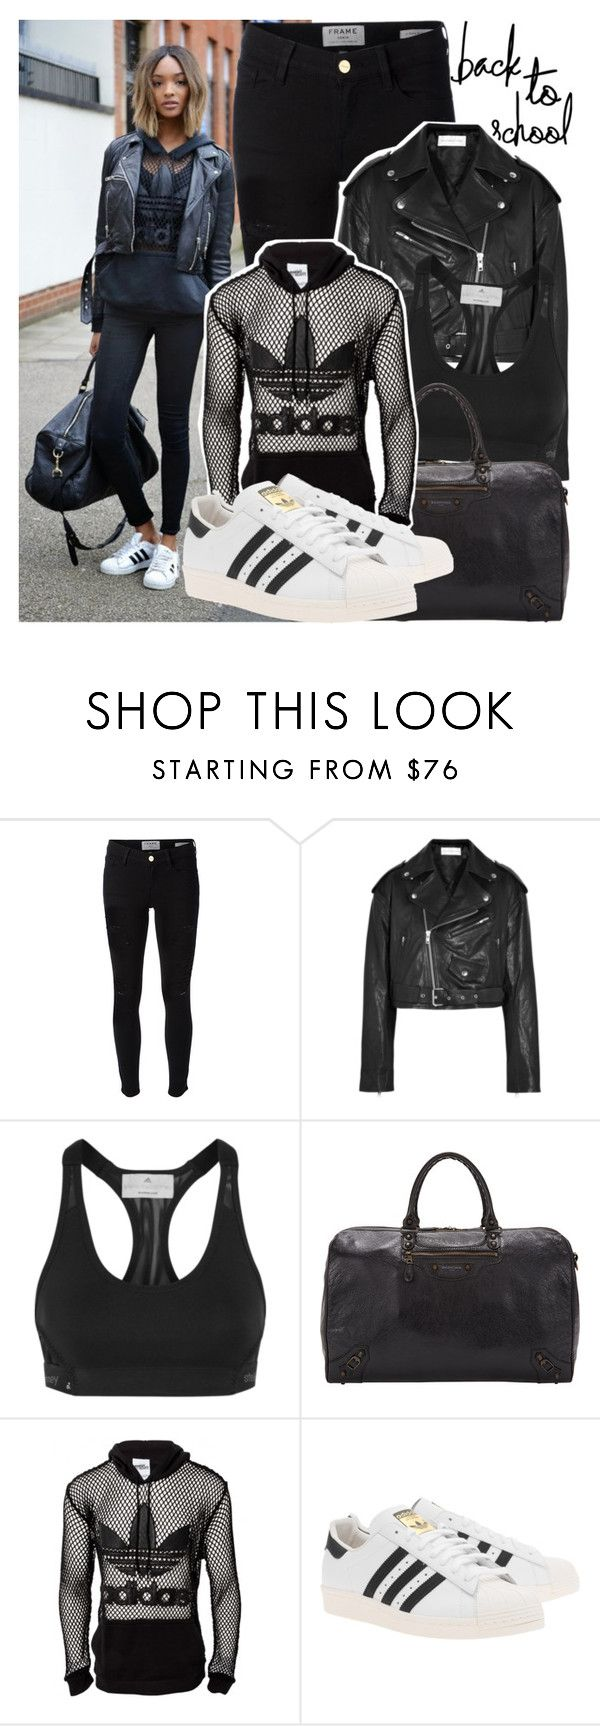 """673. New Shoes: Jourdan Dunn"" by zaandupreez ❤ liked on Polyvore featuring Dunn, Frame Denim, Faith Connexion, adidas, Balenciaga, adidas Originals, BackToSchool, JeremyScott and jourdandunn"